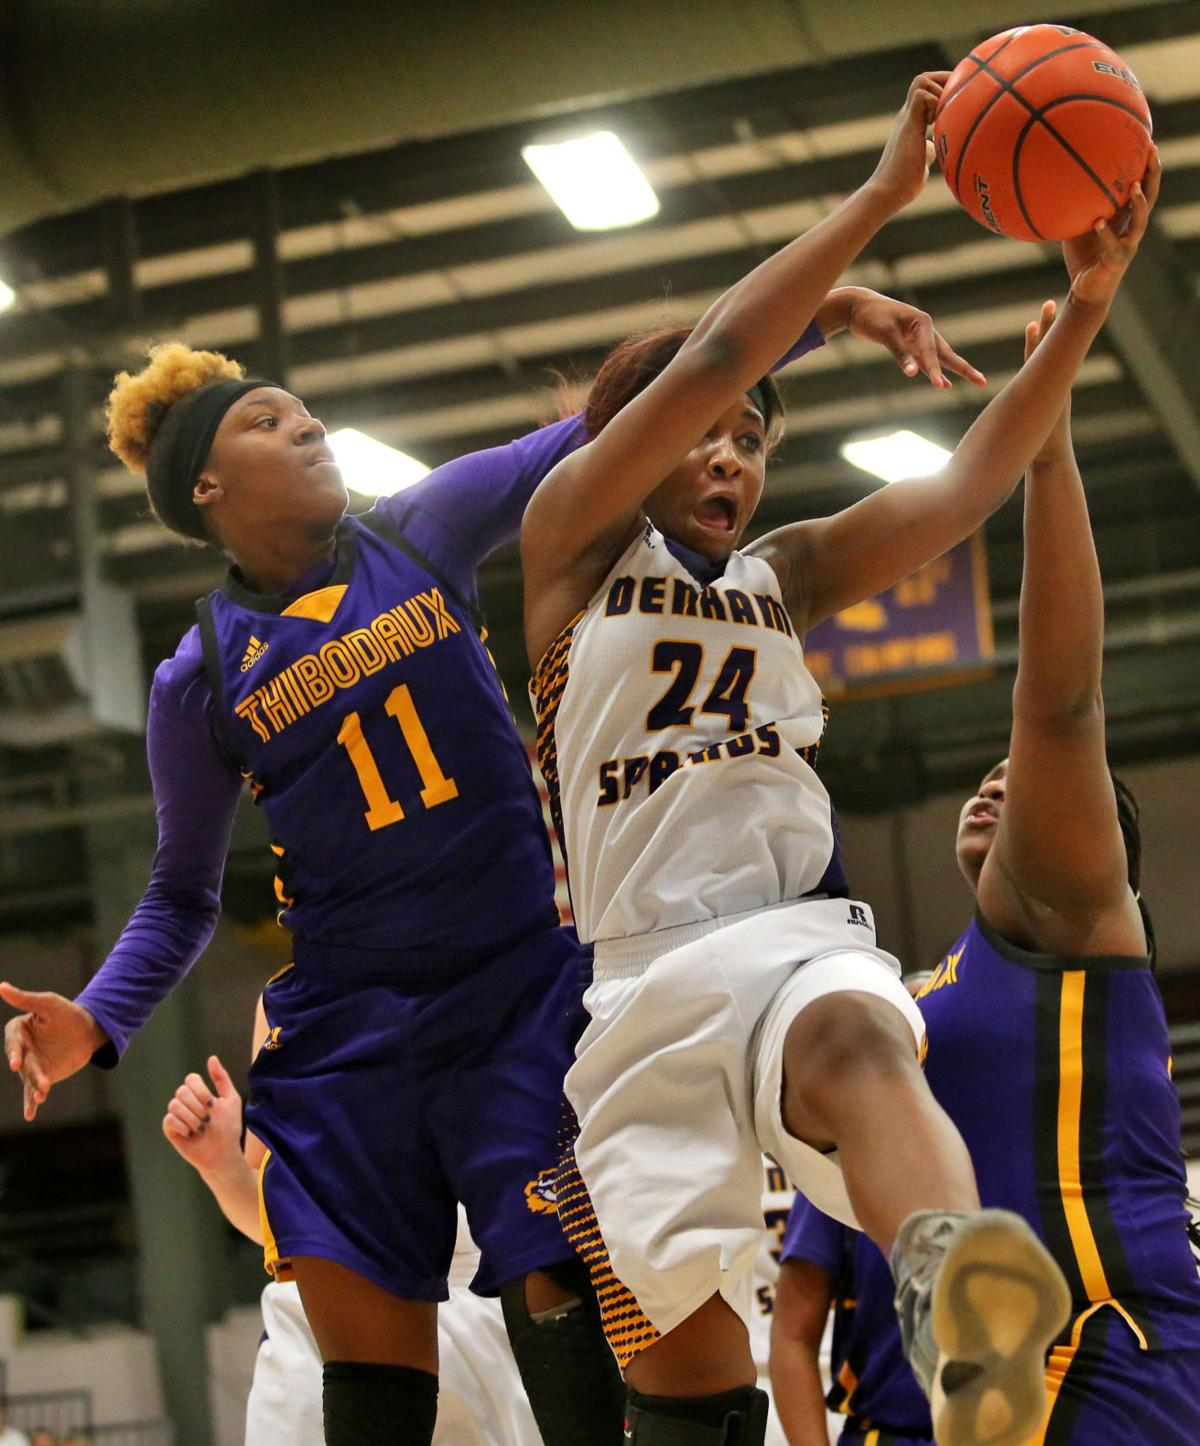 DSHS vs Thibodaux Girls Basketball